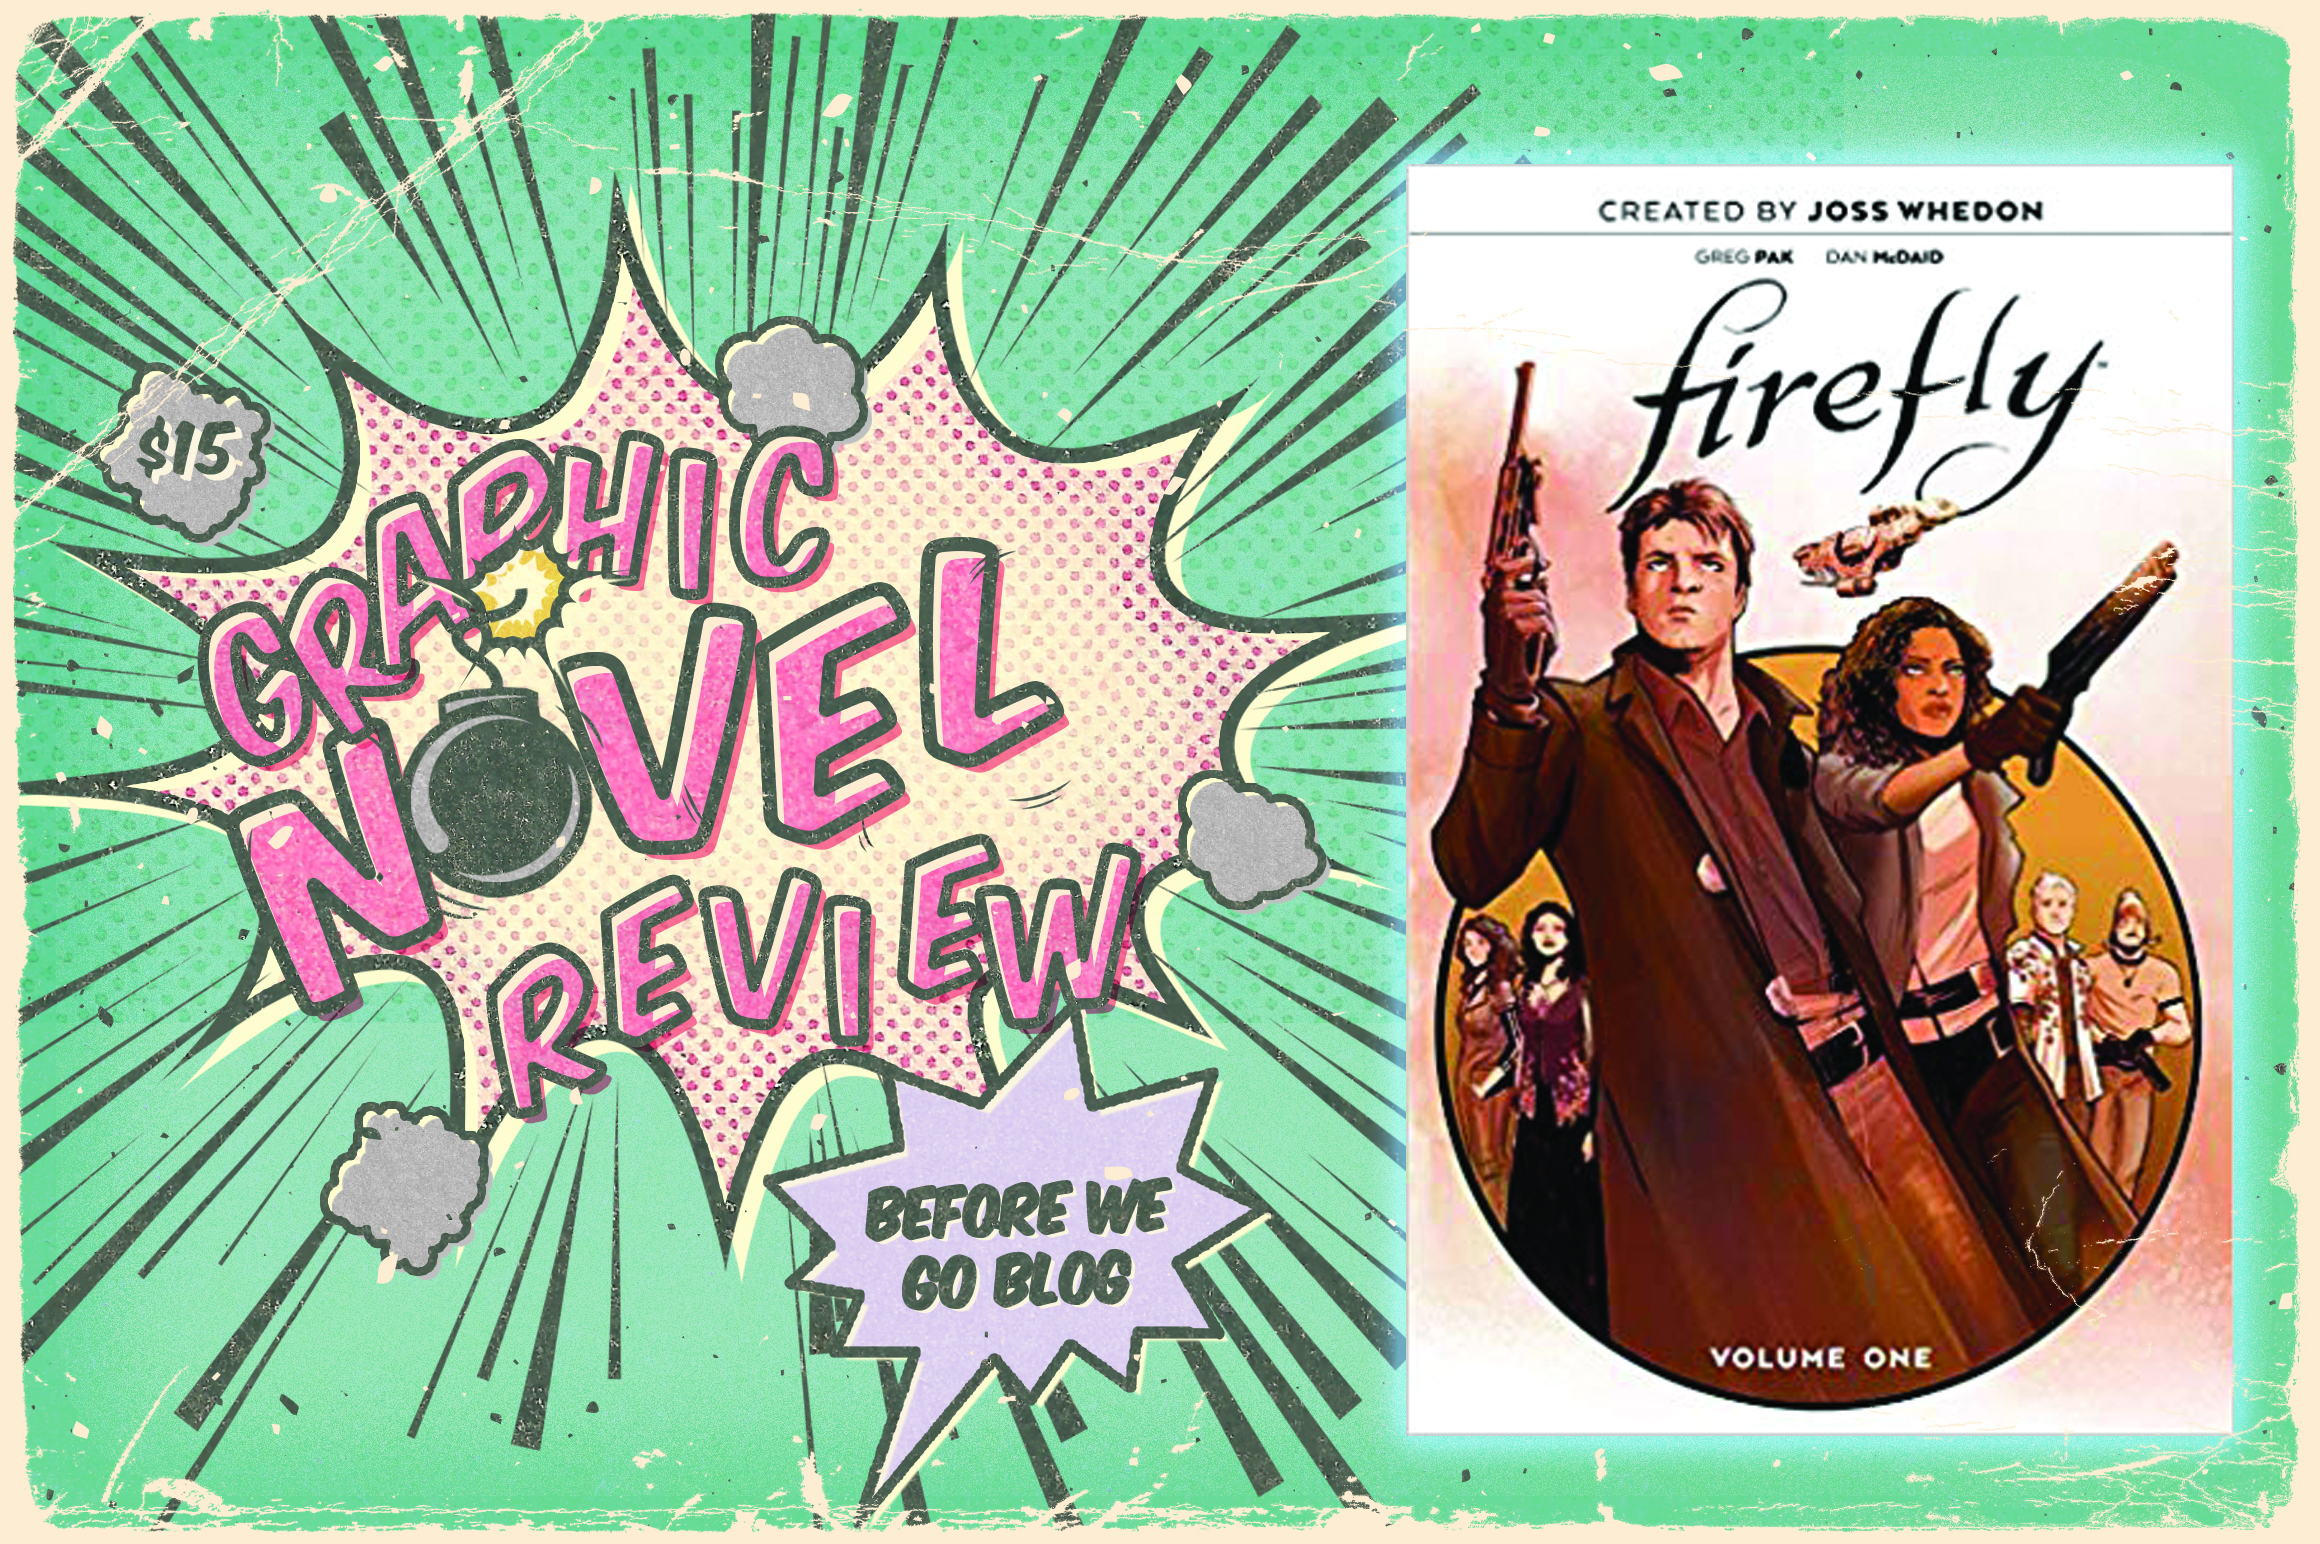 Firefly: The Unification War Vol. 1 (Firefly #1-4) by Greg Pak,  Joss Whedon, Dan McDaid